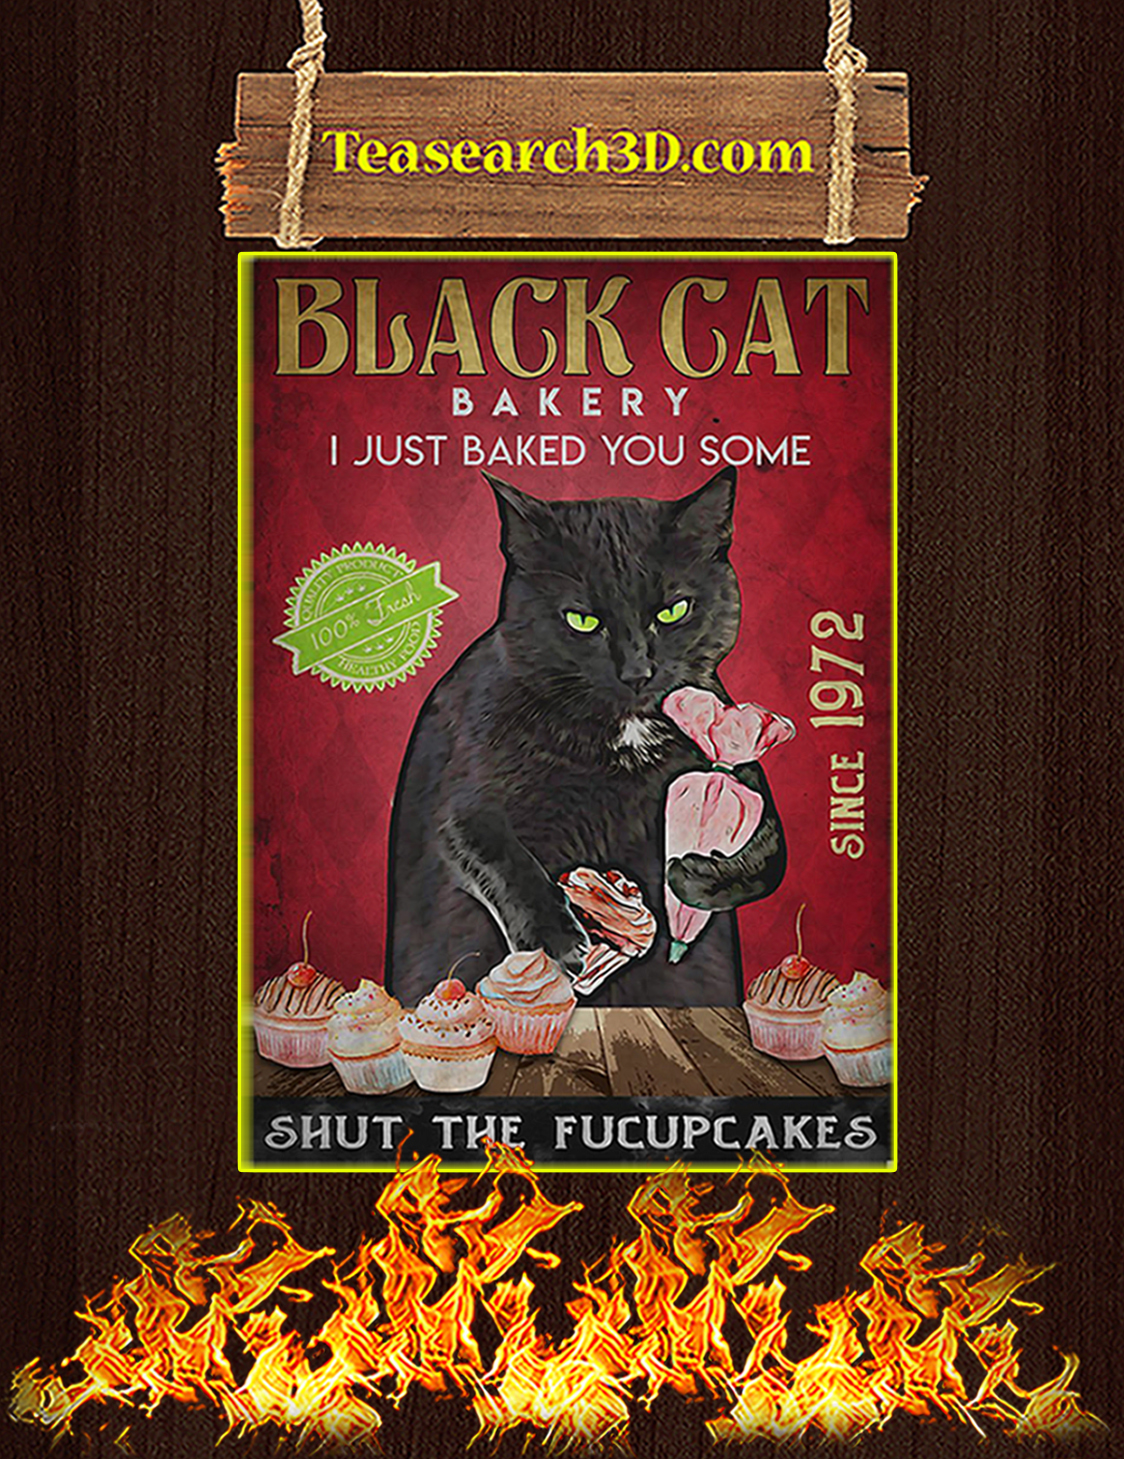 Black cat bakery I just baked you some poster A3